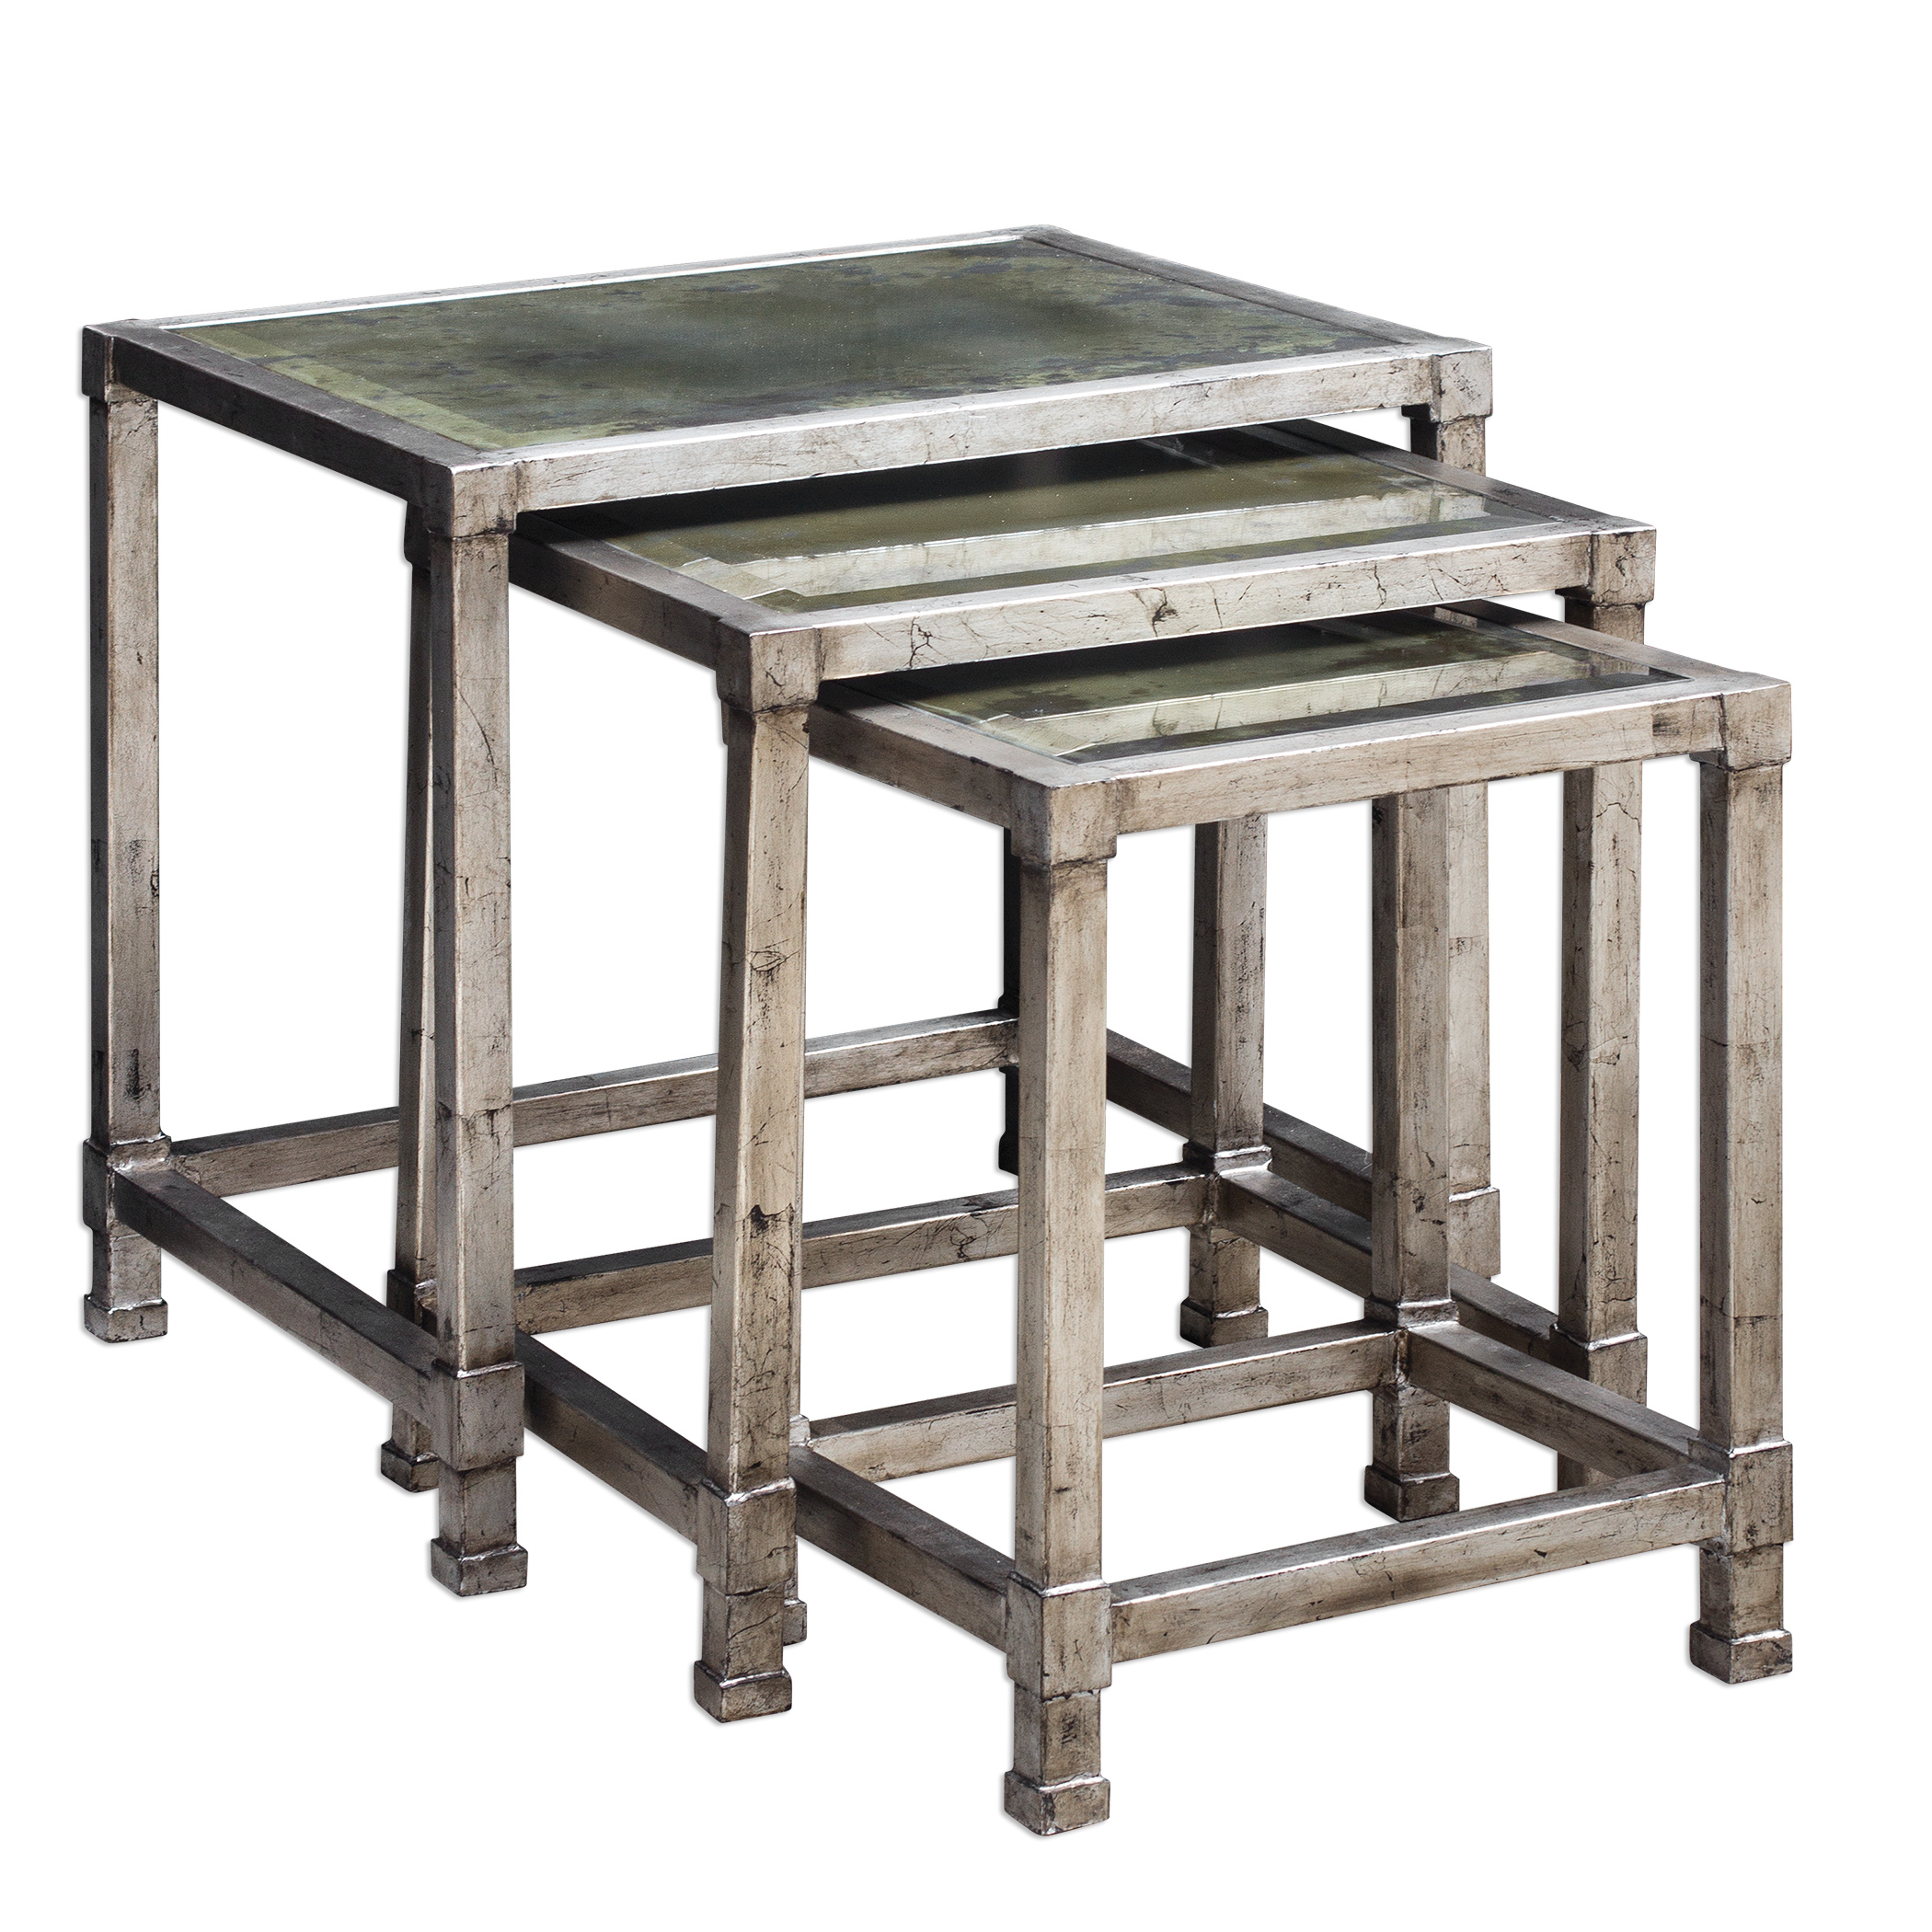 Accent Furniture - Occasional Tables Keanna Antiqued Silver Nesting Tables, S/3 by Uttermost at Goffena Furniture & Mattress Center